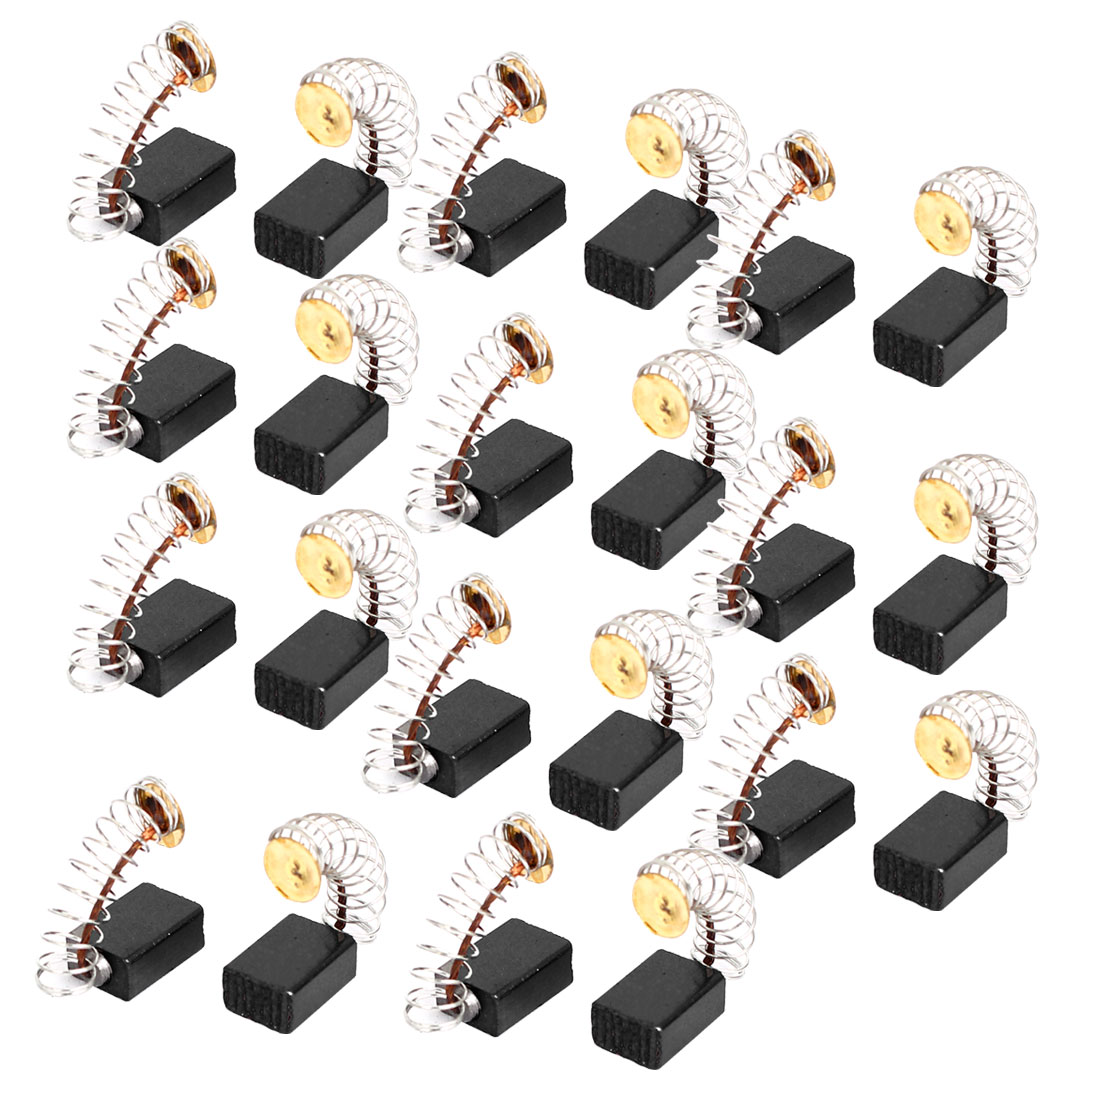 12mm x 8mm x 5mm Electric Drill Motor Rotary Power Tool Carbon Brushes 10 Pairs